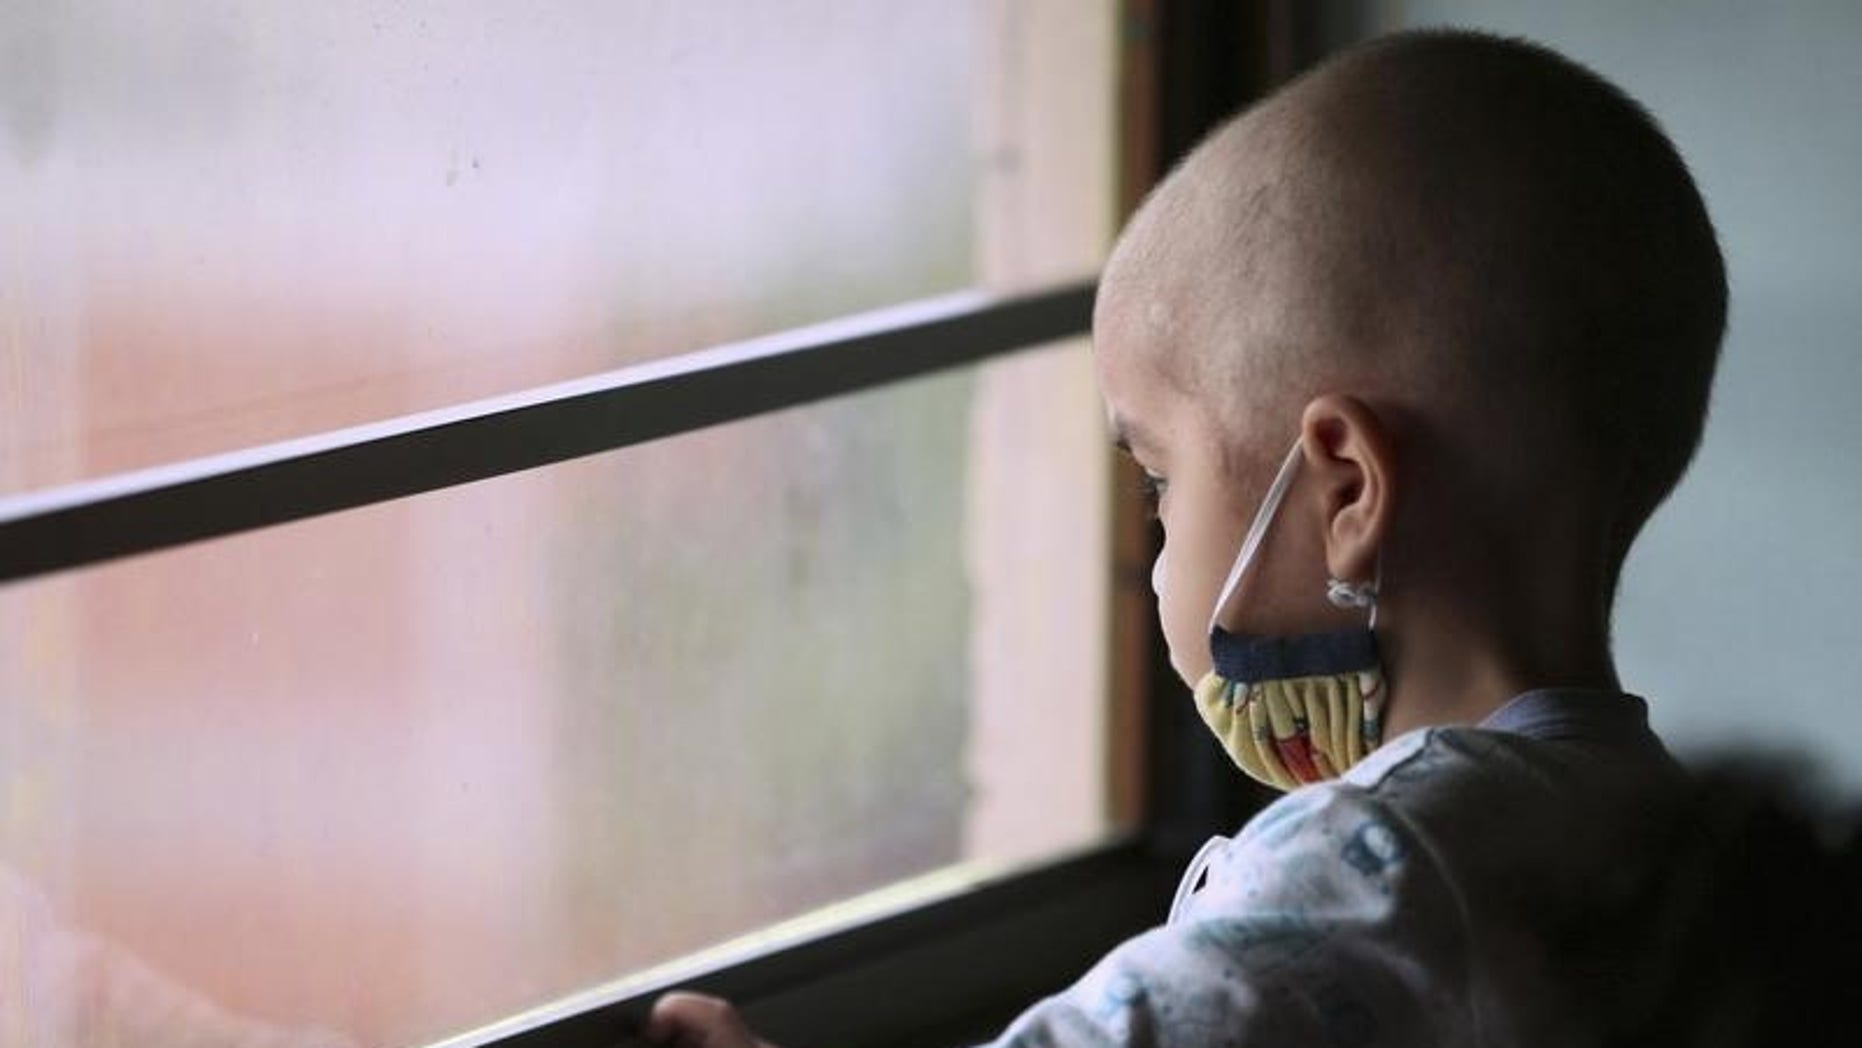 Manuel Andres Sequera, 2, looks out the window while receiving chemotherapy treatment at a paediatric hospital in Maracaibo, Venezuela. November 29, 2011. REUTERS/Isaac Urrutia